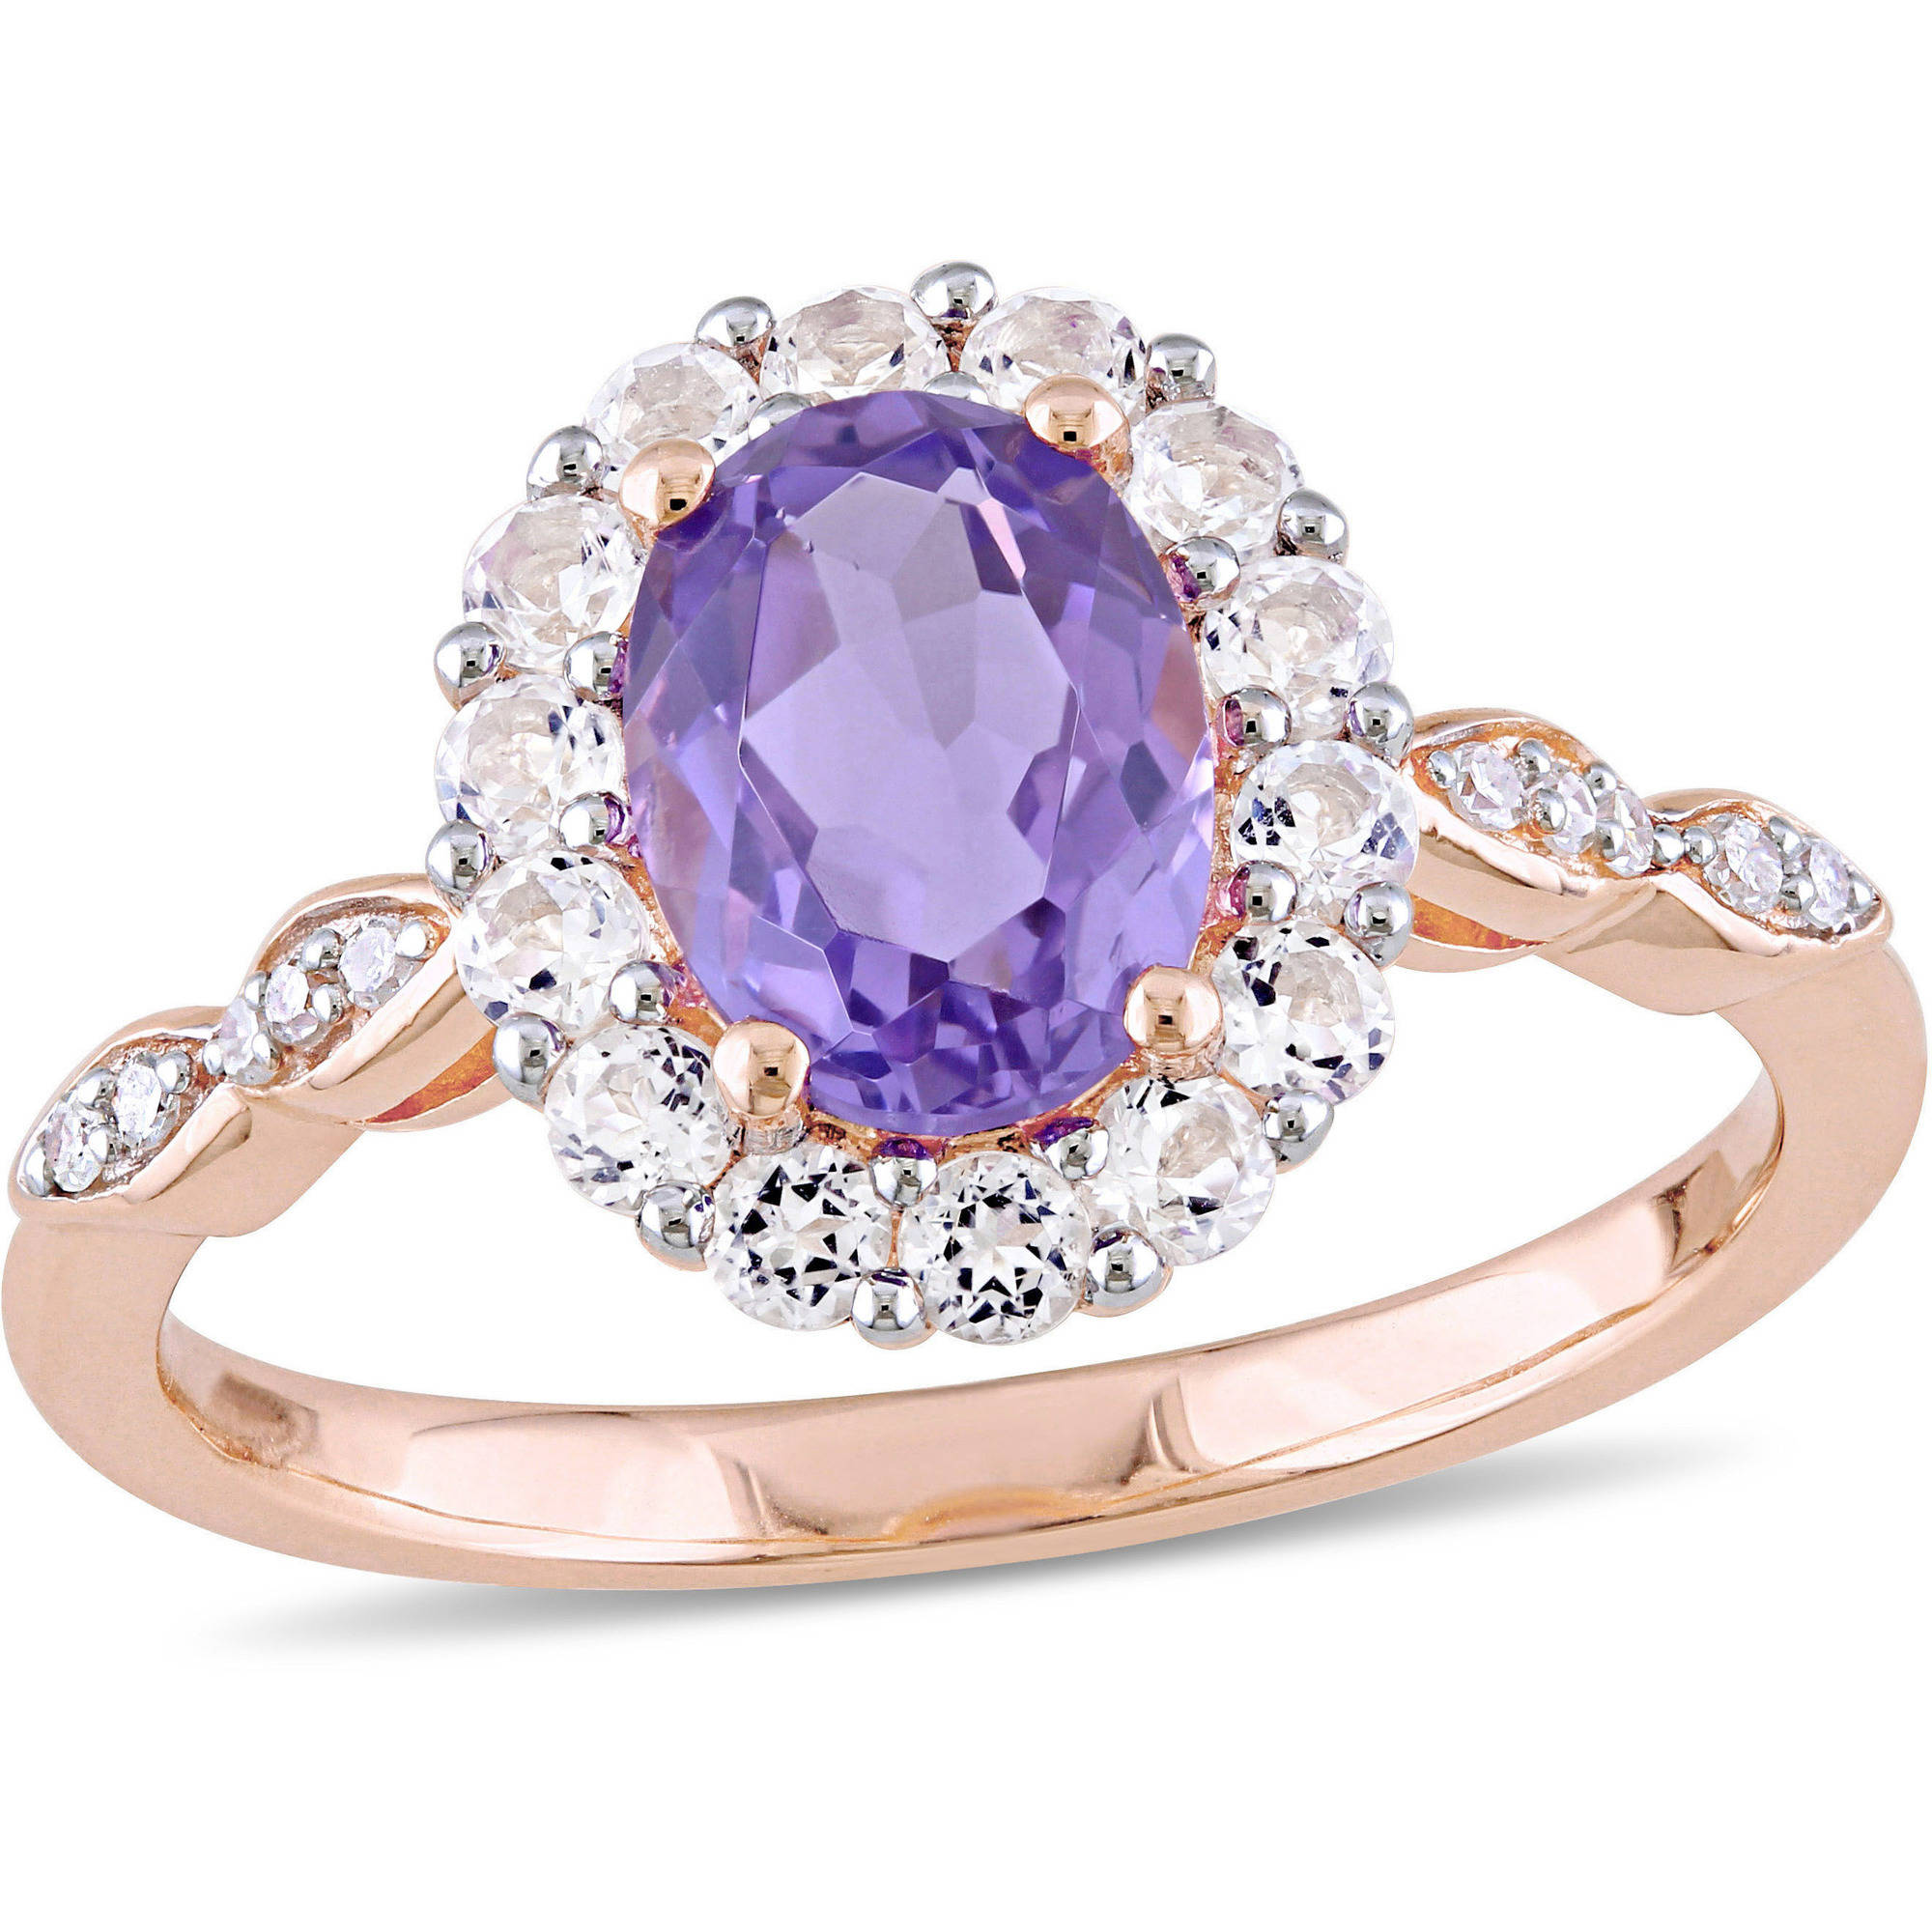 Tangelo 1-5 8 Carat T.G.W. Amethyst, White Topaz and Diamond-Accent 14kt Rose Gold Vintage Ring by Tangelo